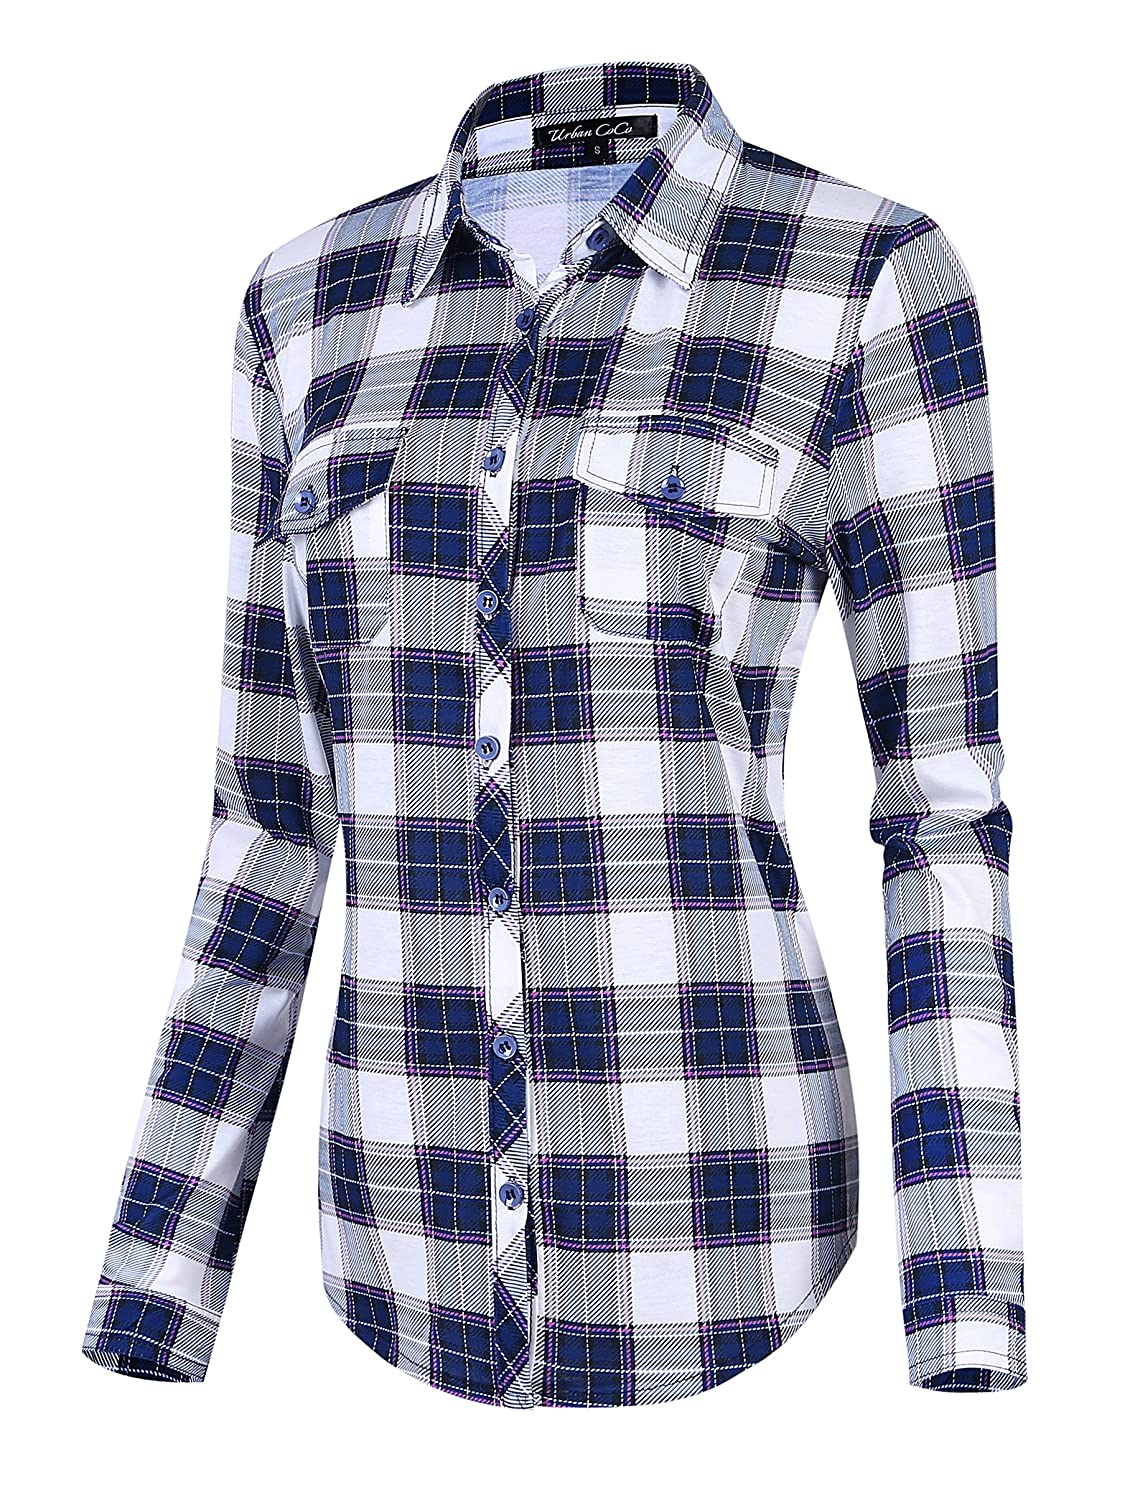 Urban CoCo Women's Classic Plaid Shirt Button Down Long Sleeve Blouse Bingo E-Commerce